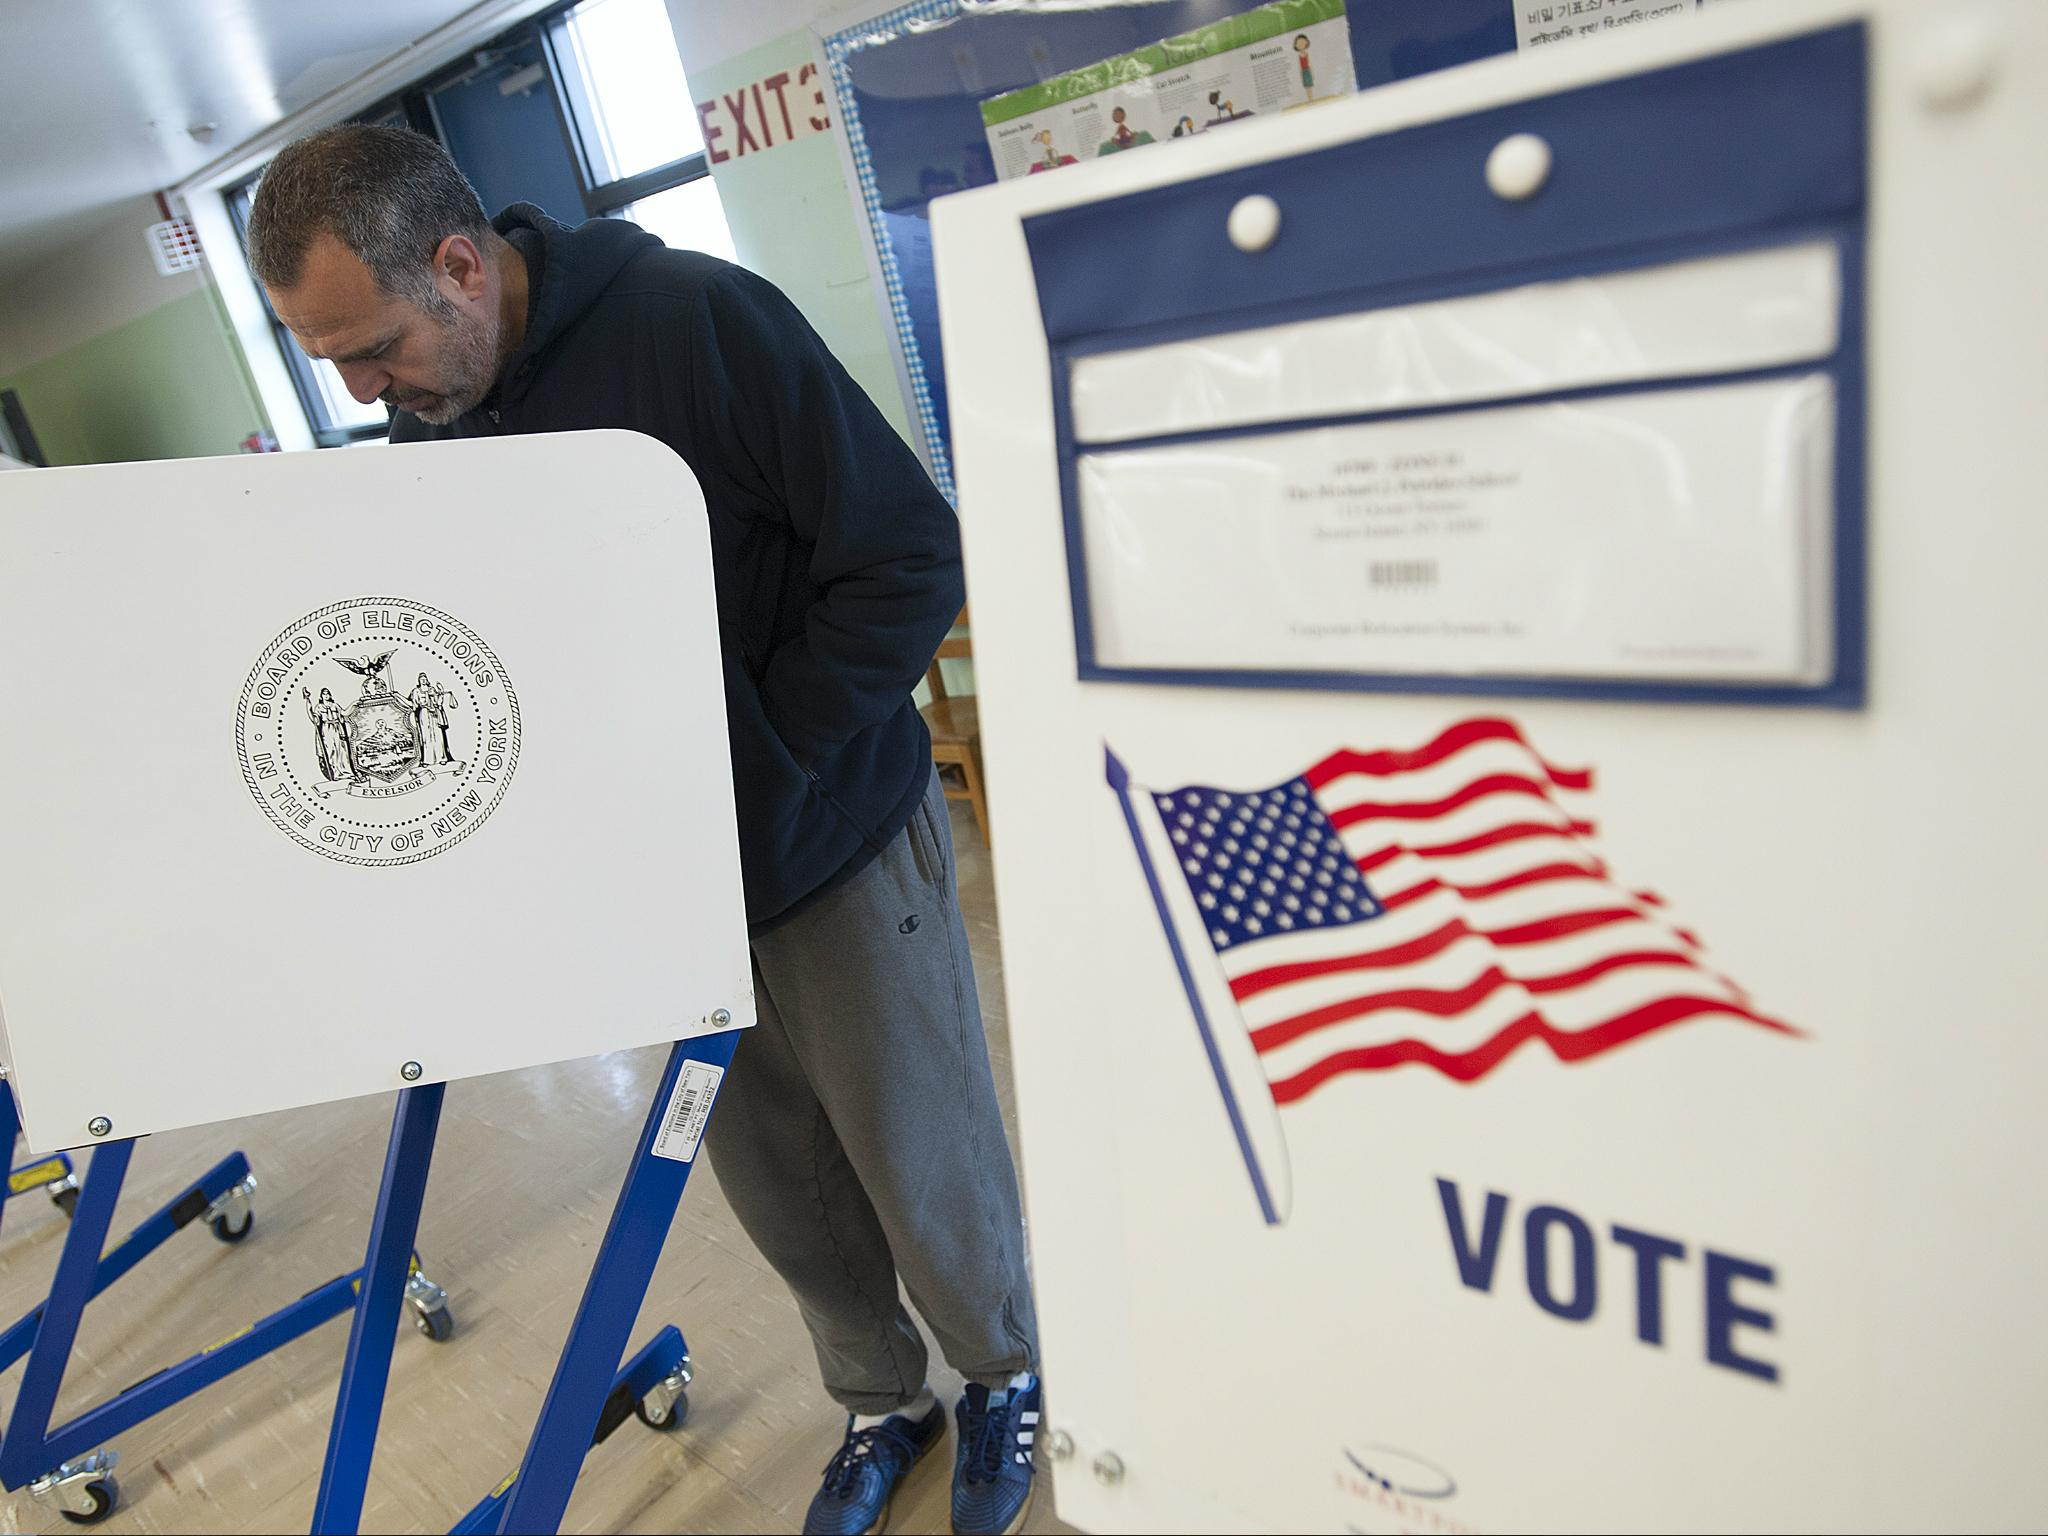 US cyber security official says 21 states' voter rolls were hacked during 2016 election